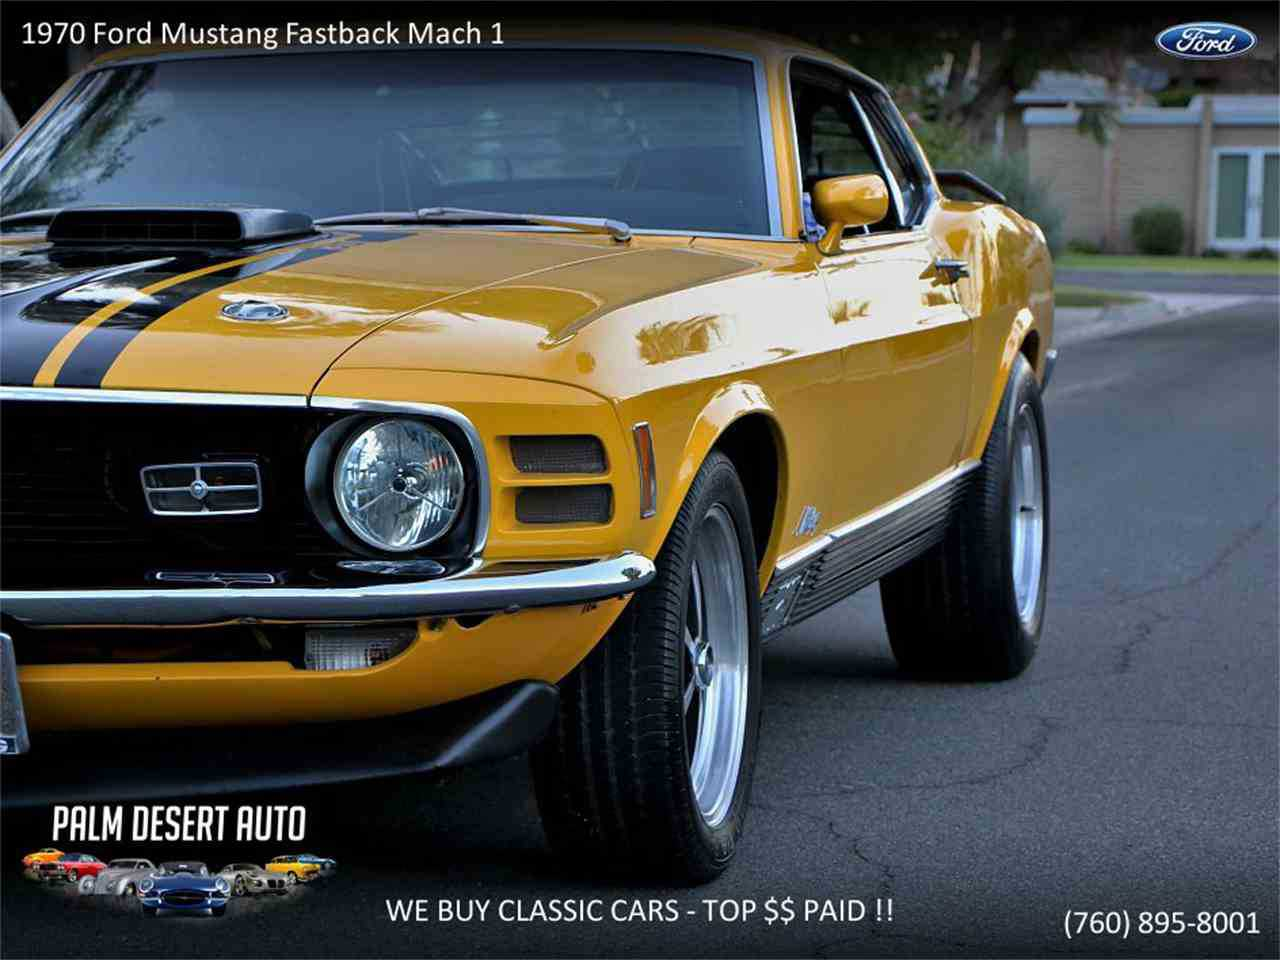 1970 Ford Mustang Mach 1 For Sale In Palm Desert Ca Oto5h13973o Fastback Prev Next